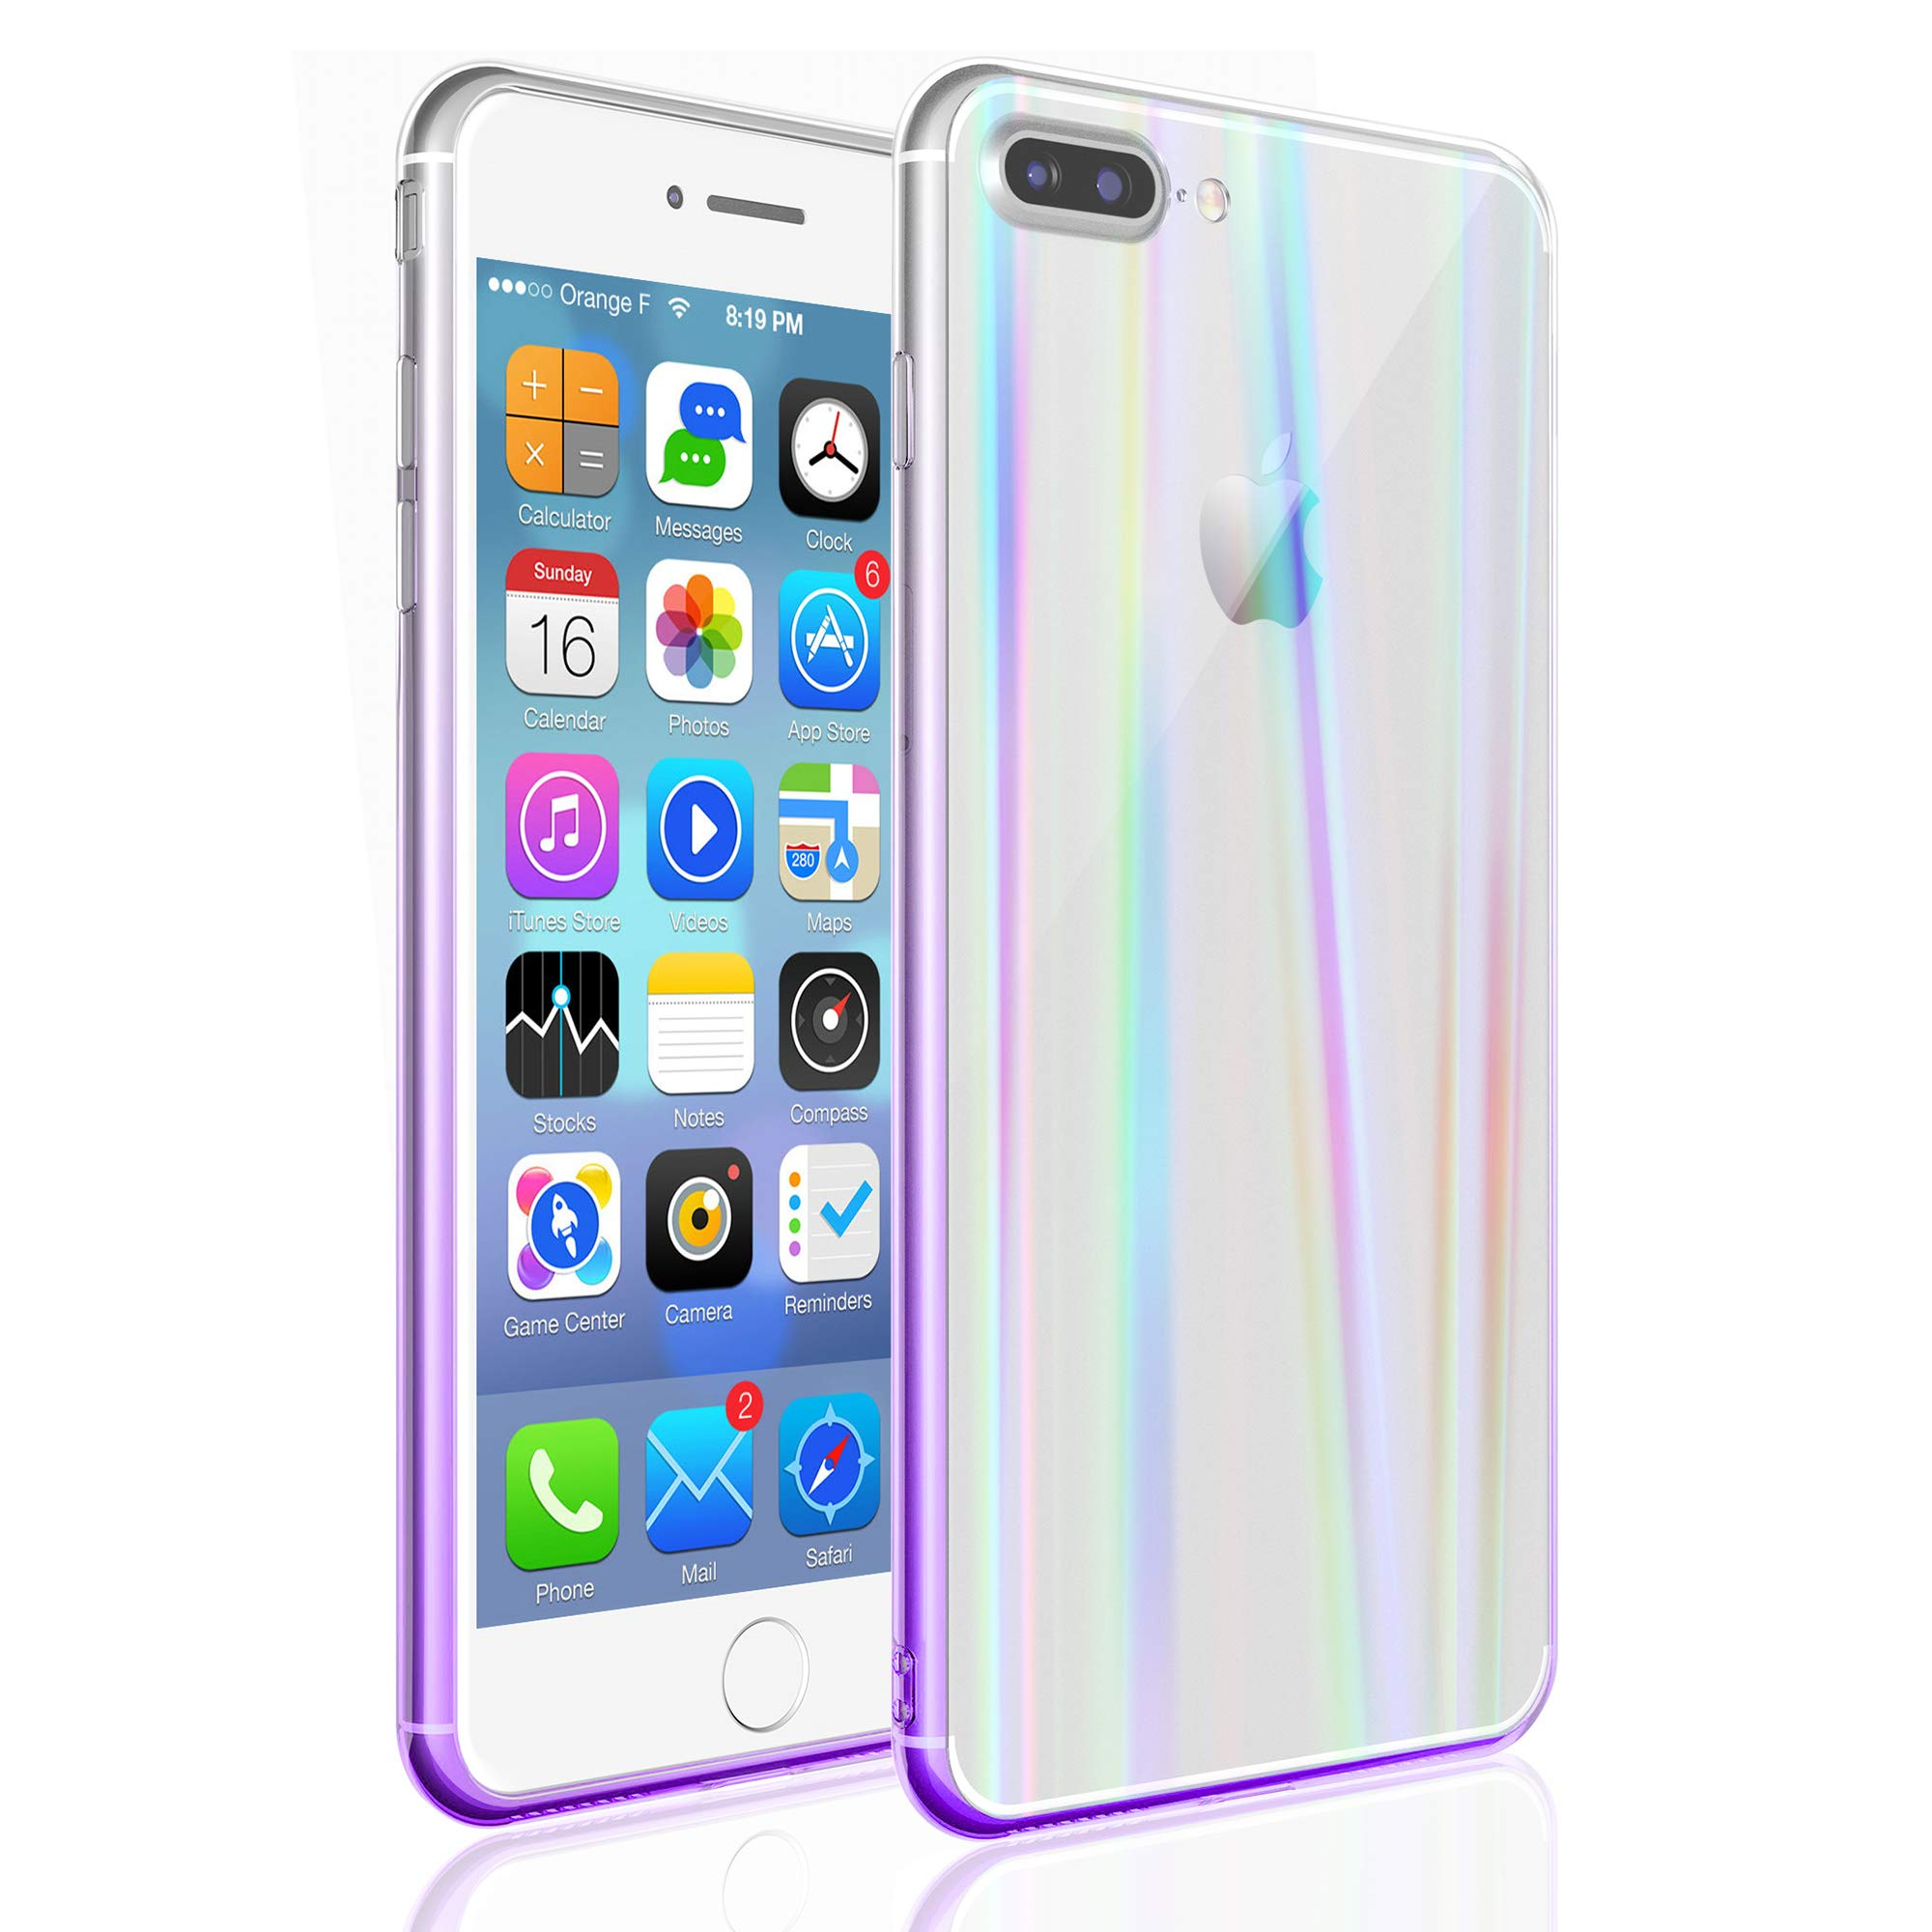 EYZUTAK Transparent Aurora Gradient Color Case for iPhone Xs Max, Ultra Thin Tempered Glass Back Anti-Scratch TPU Bumper Shockproof Protective Case Cover for iPhone Xs Max - Purple